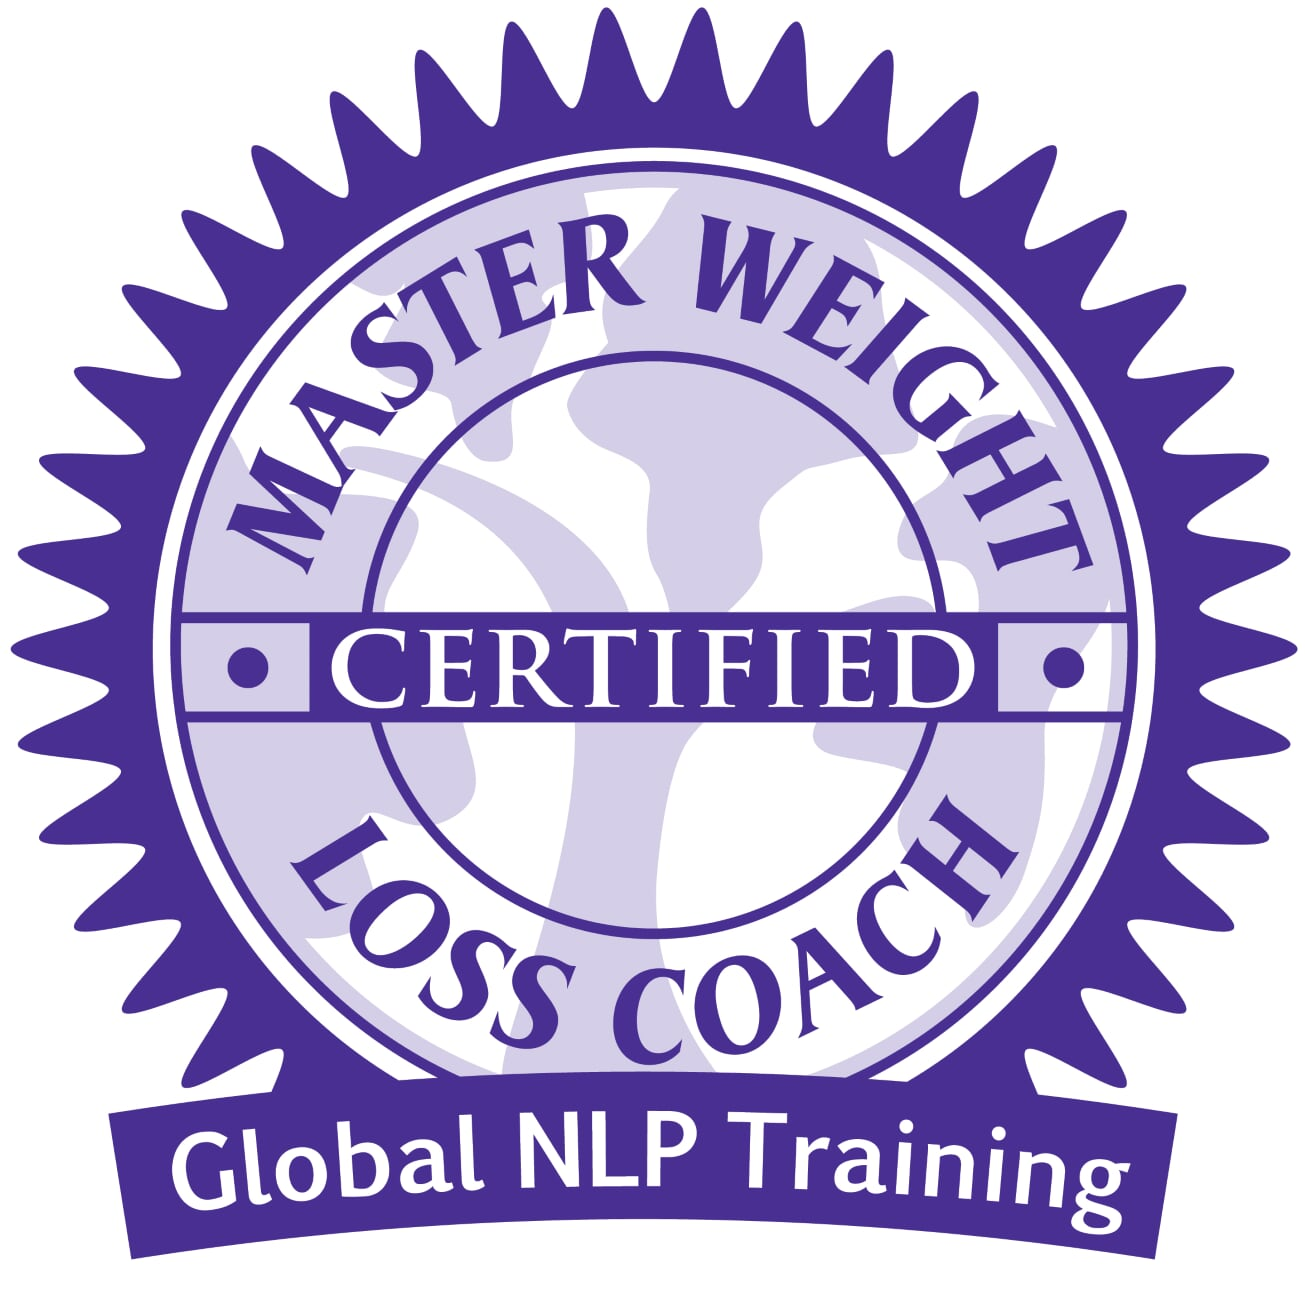 Master weight loss coach